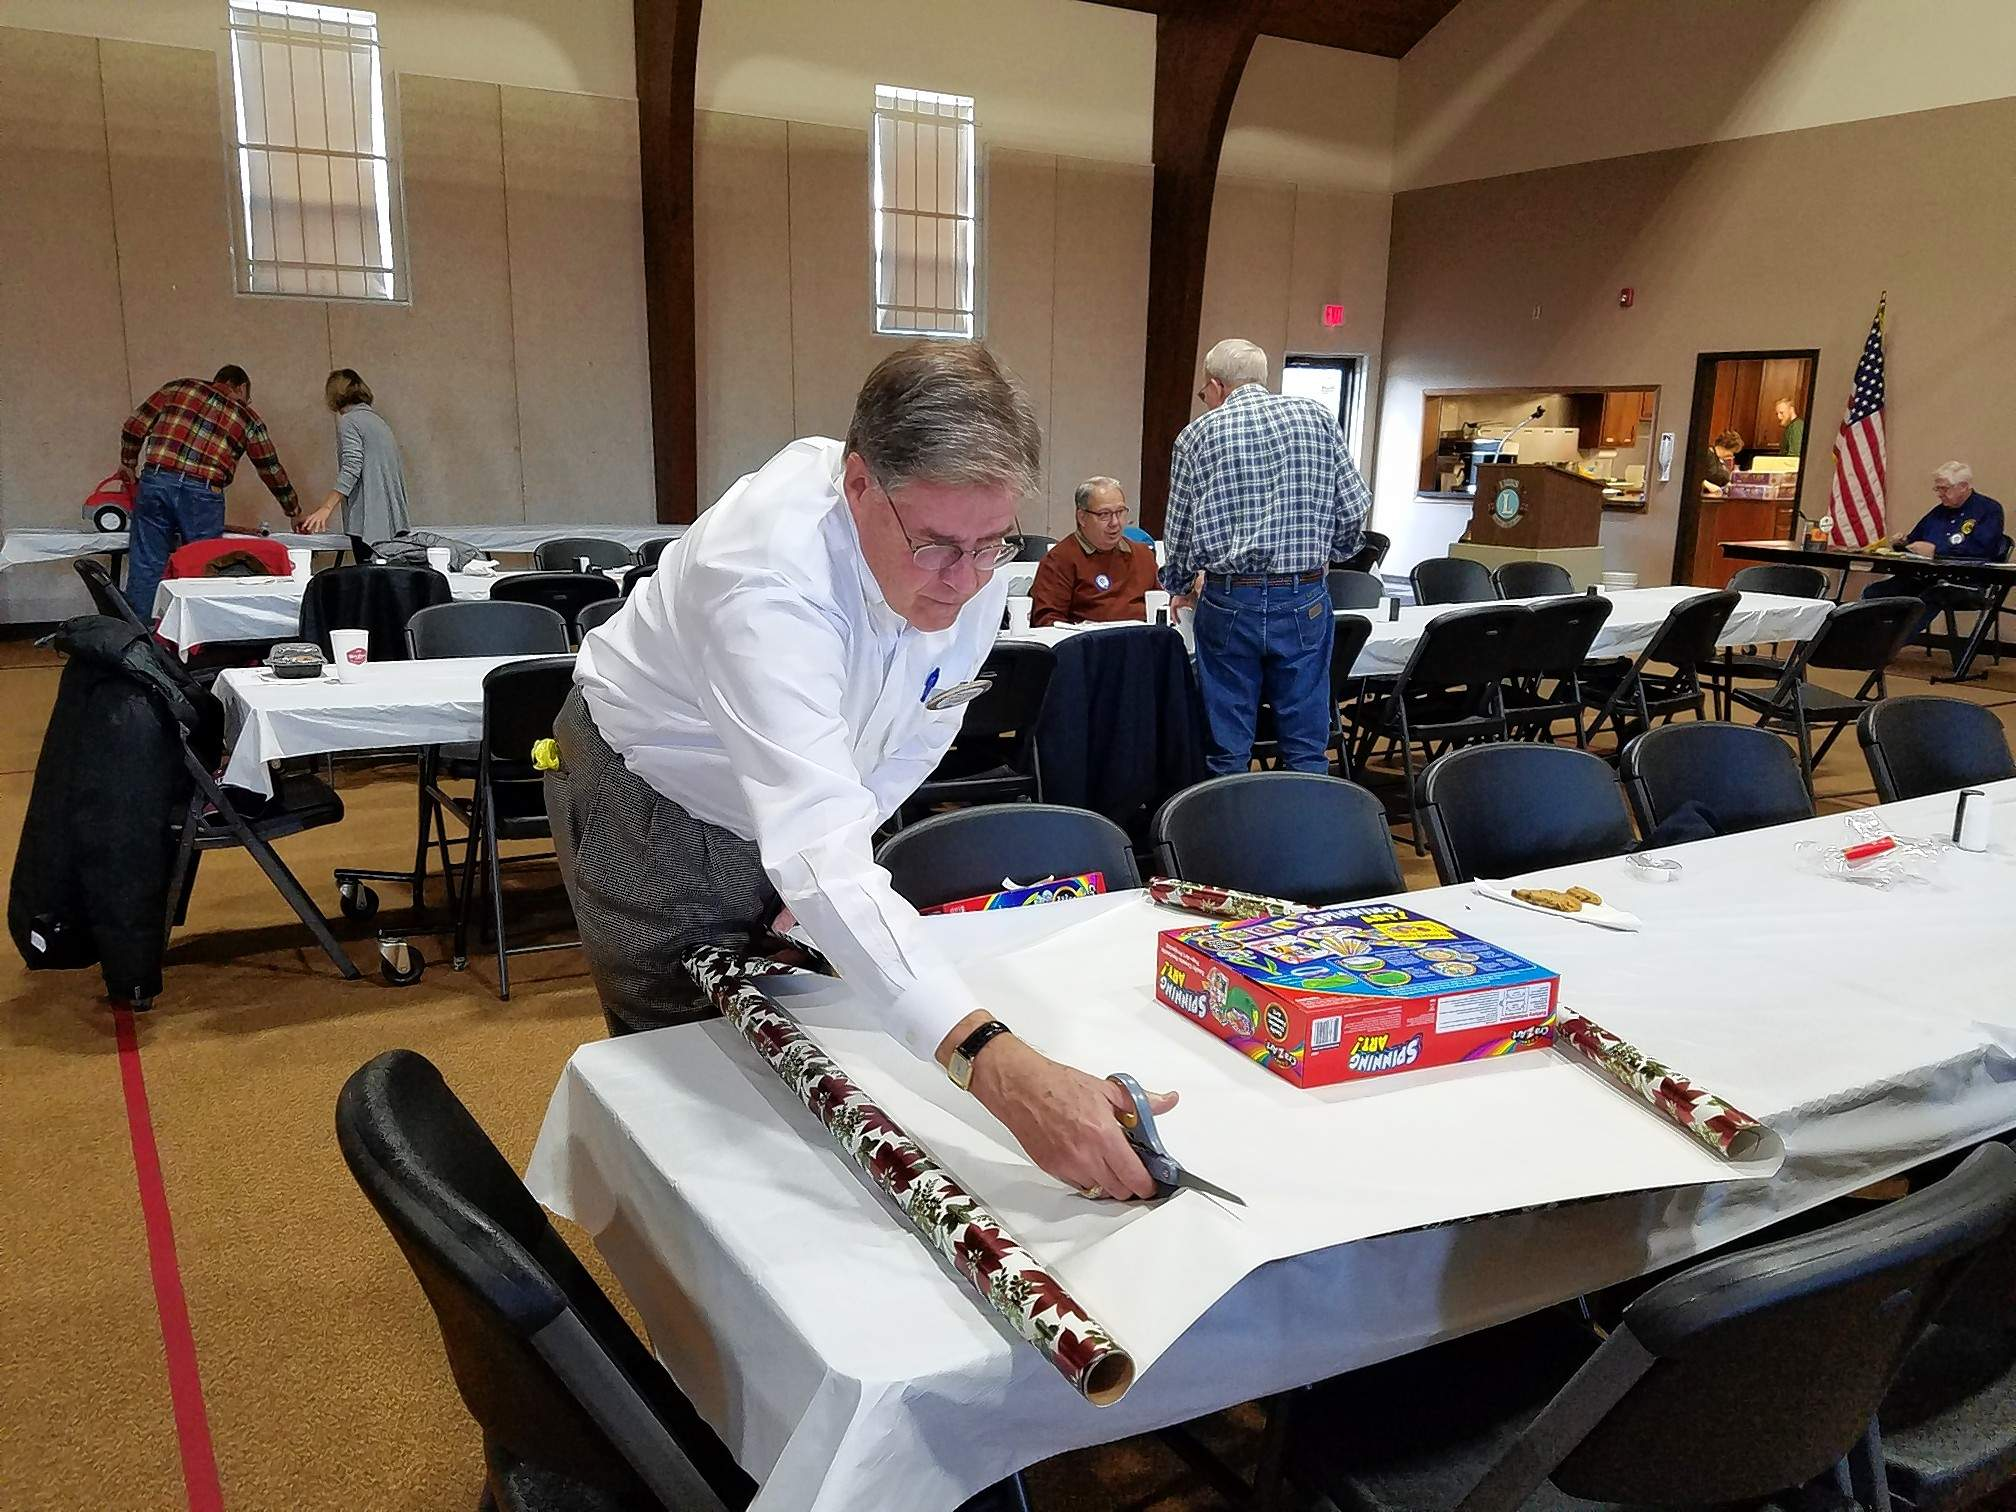 Marion Lions Club member Hayden Gardiner shows off his present-wrapping technique at Wednesday's club meeting.